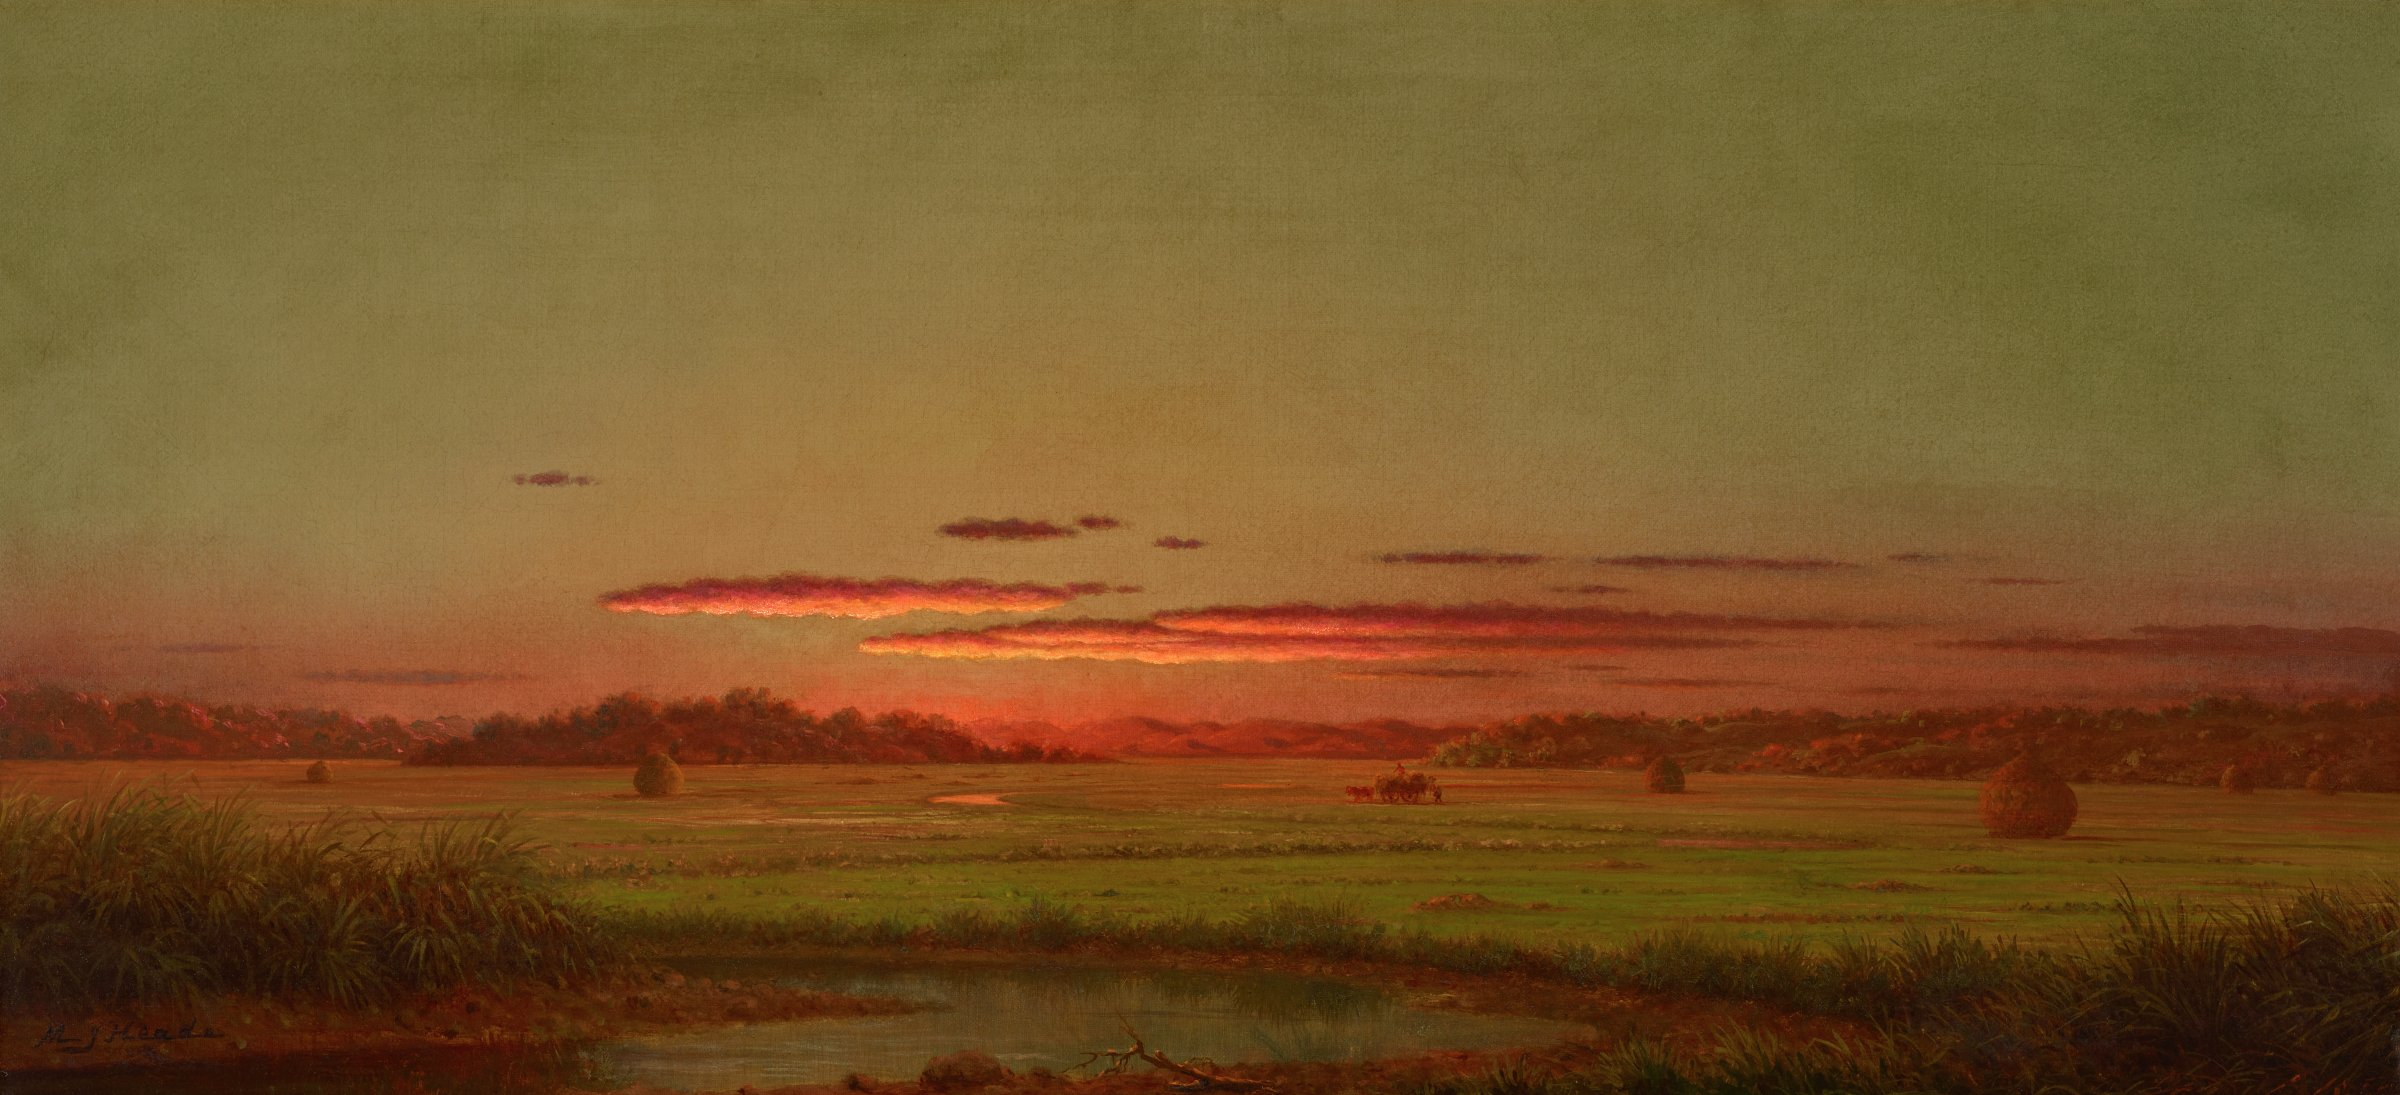 In the foreground a placid river winds through small hillocks abounding in marsh grass. Beyond this dark foreground the marsh recedes toward the distant mountains and sky, which are bathed in a thin red glow of sunset. On the marshes themselves stand several of Heade's ubiquitous haystacks, and near the center of the canvas workers are loading hay onto a wagon.